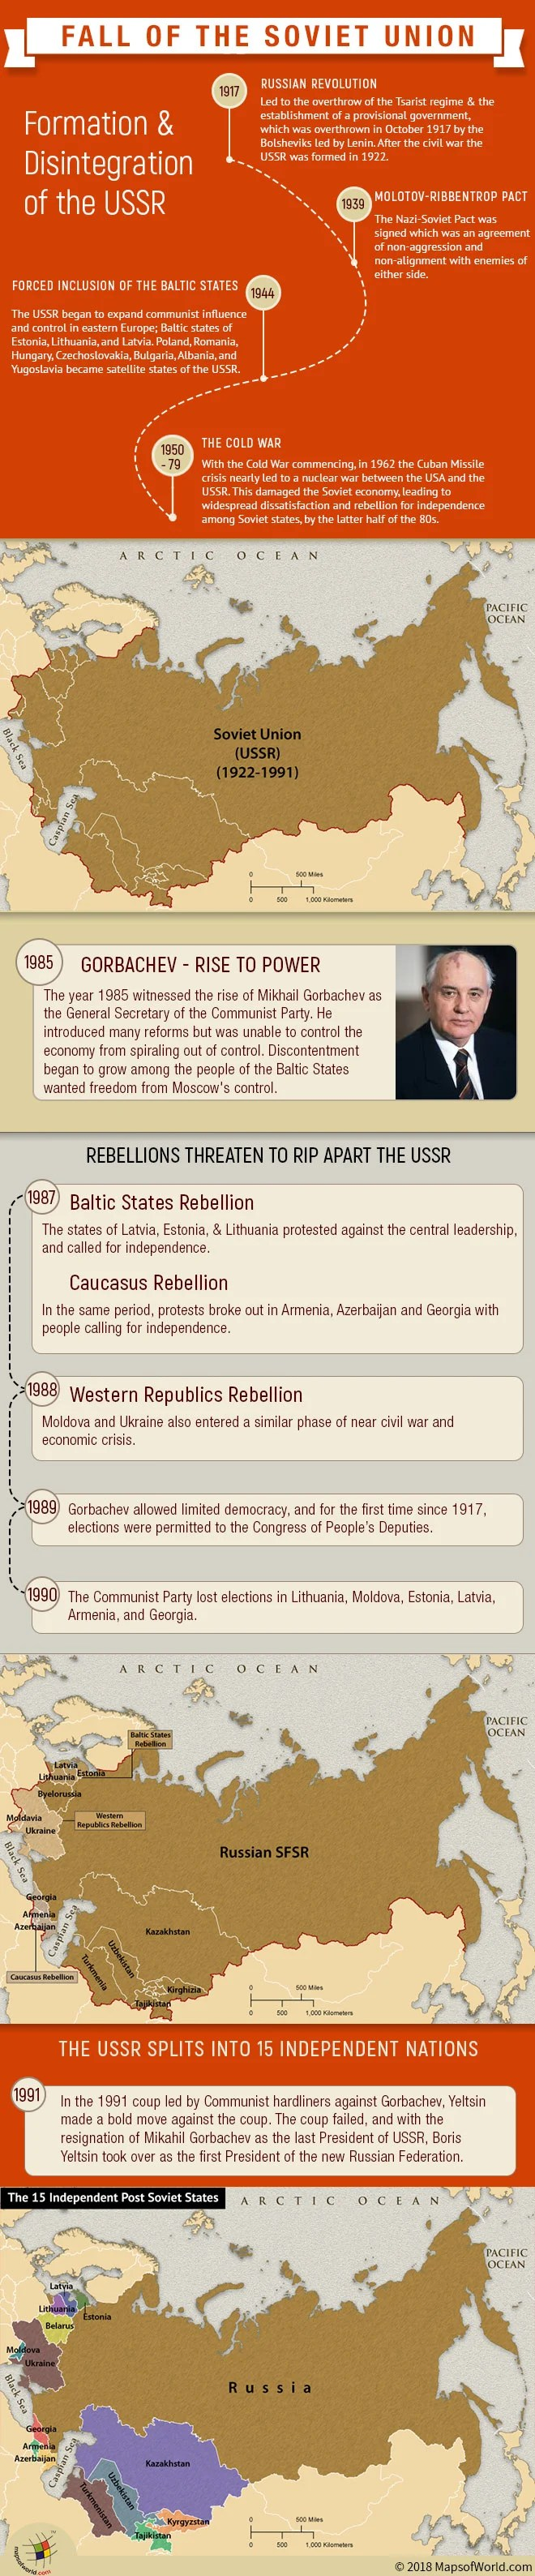 Infographic and maps on the reasons that led to the fall of Soviet Union